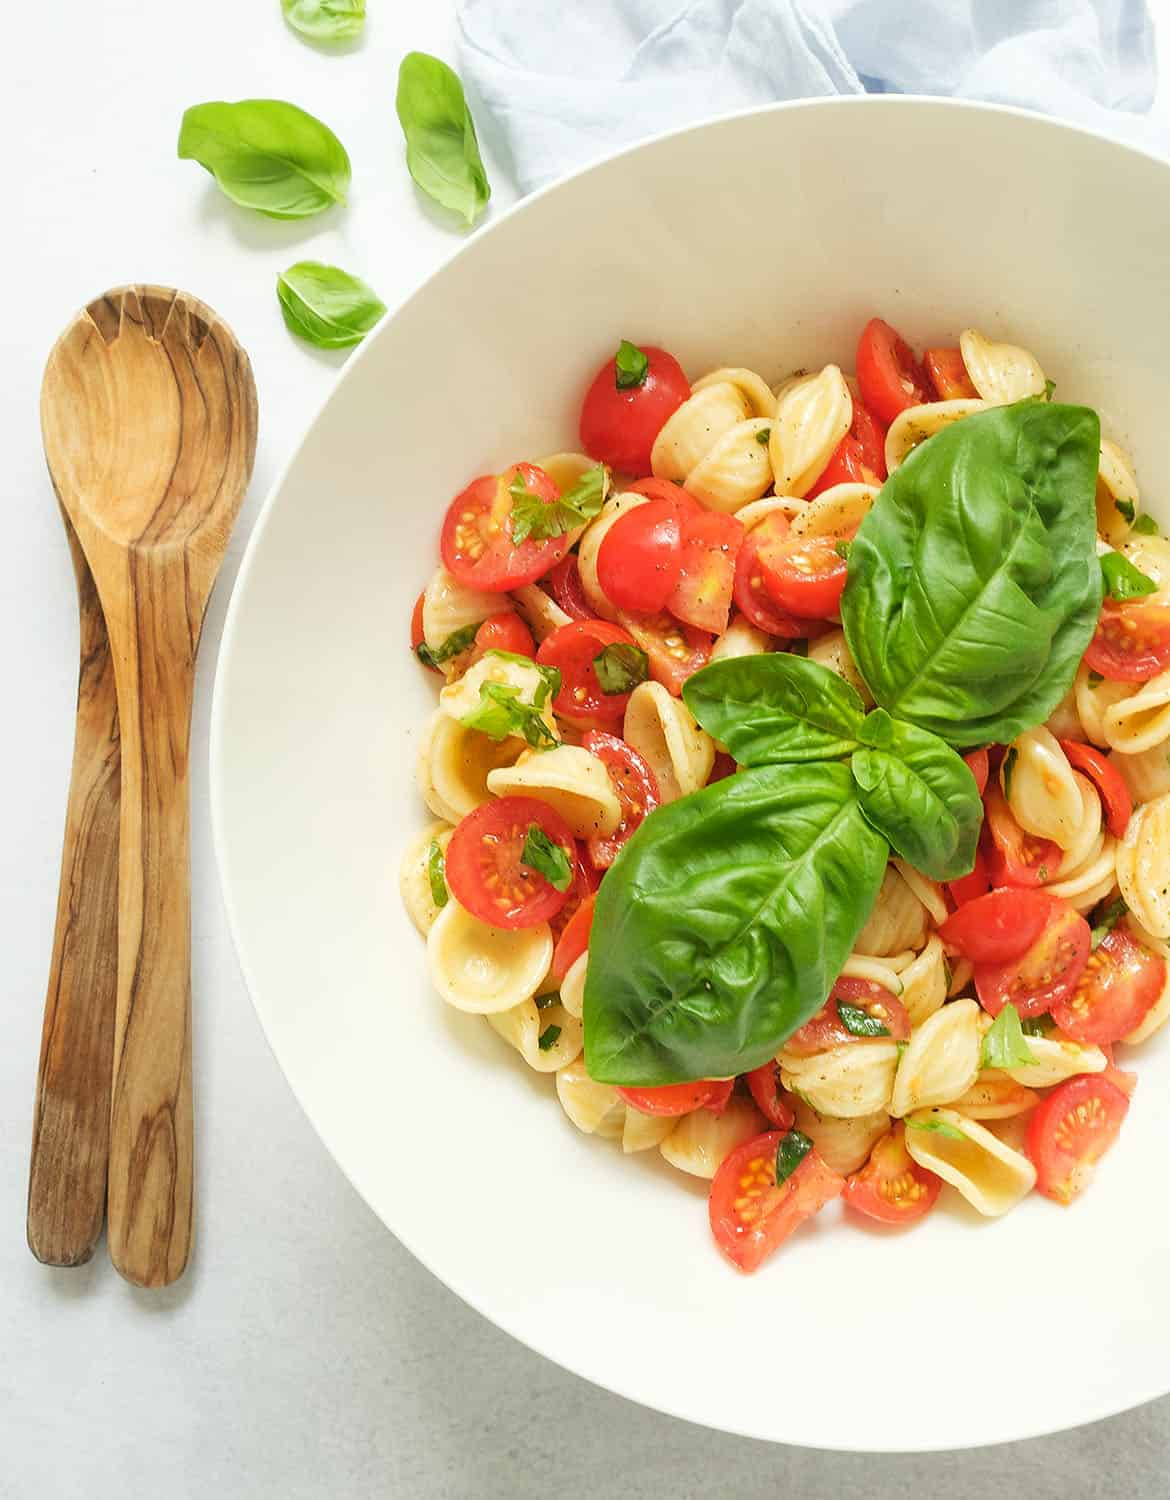 Vegan tomato pasta salad in a white bowl with large basil leaves - The Clever Meal